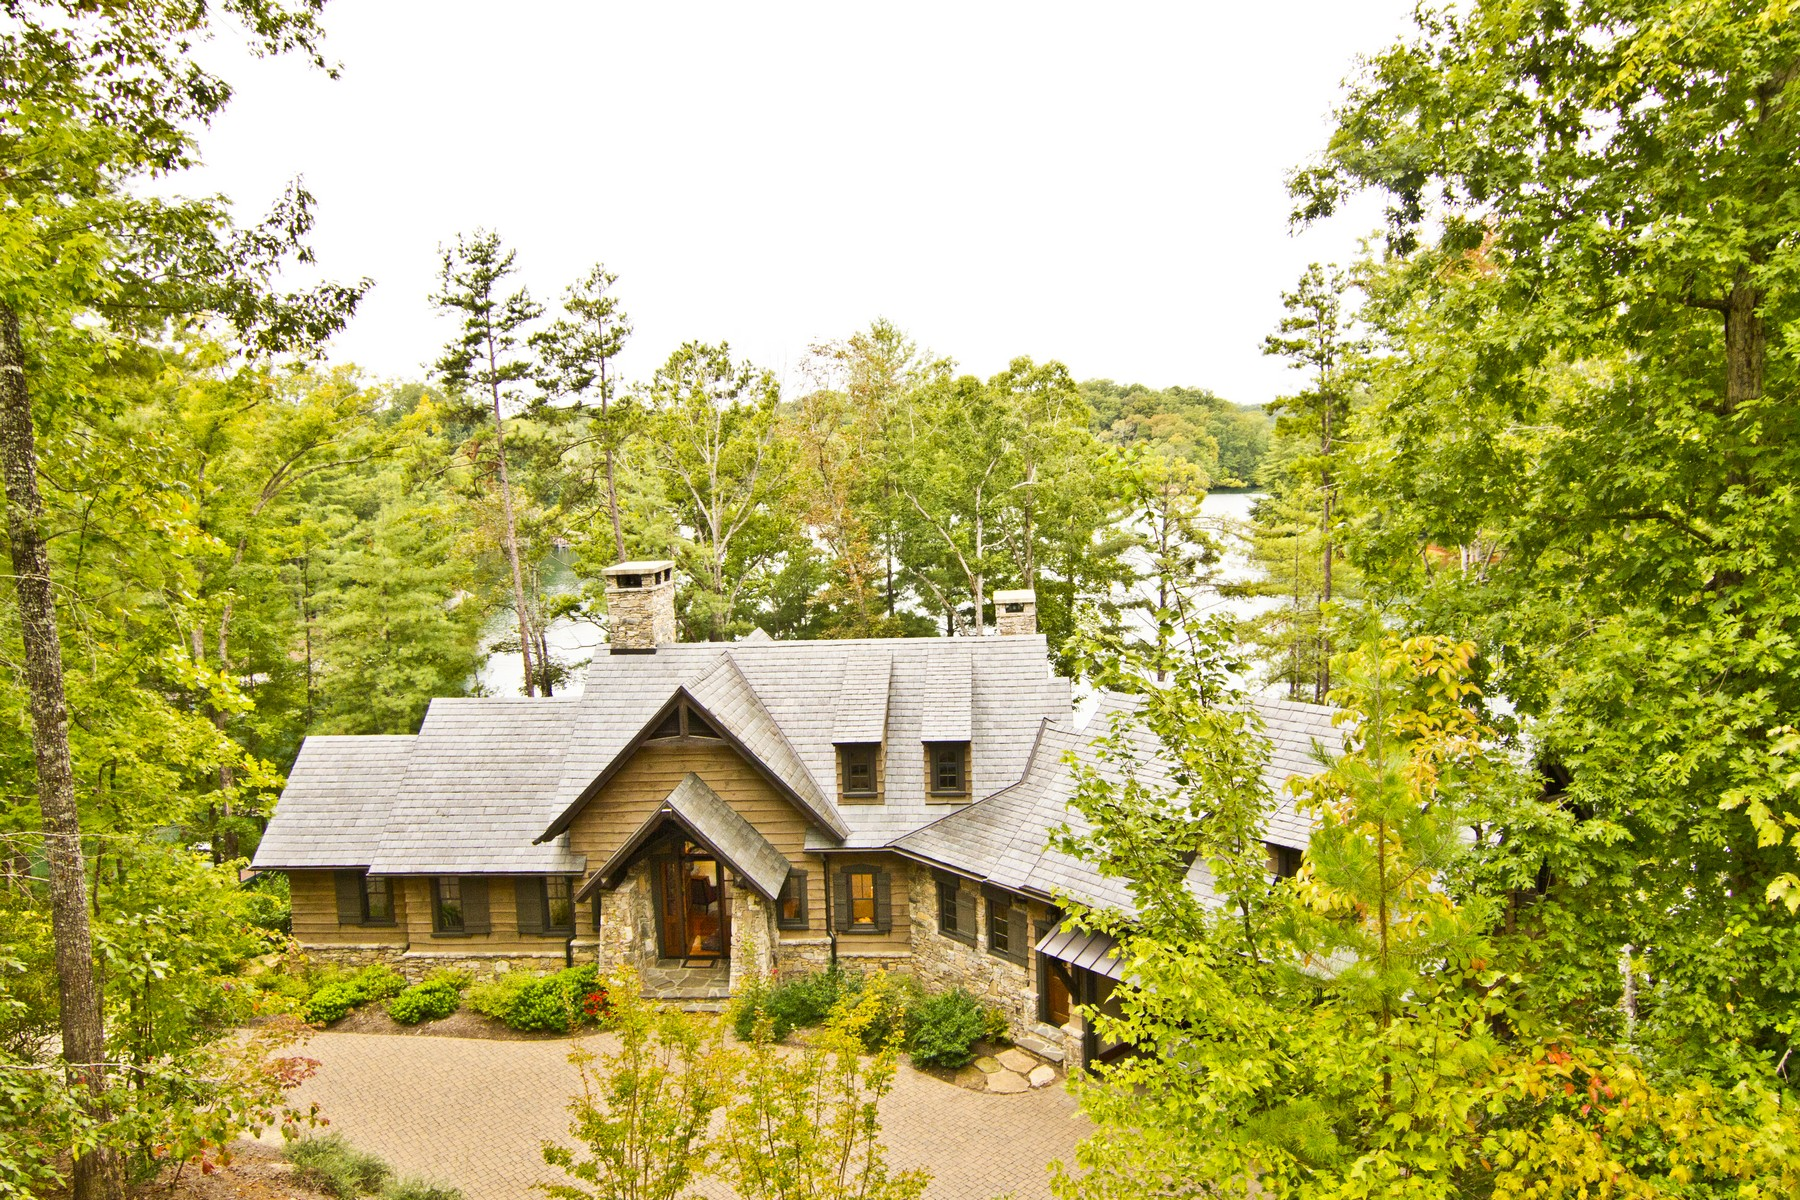 Single Family Home for Sale at Outstanding & Prominent Waterfront Dream Comprising Eloquent Architecture 105 Burwood Court The Reserve At Lake Keowee, Sunset, South Carolina, 29685 United States